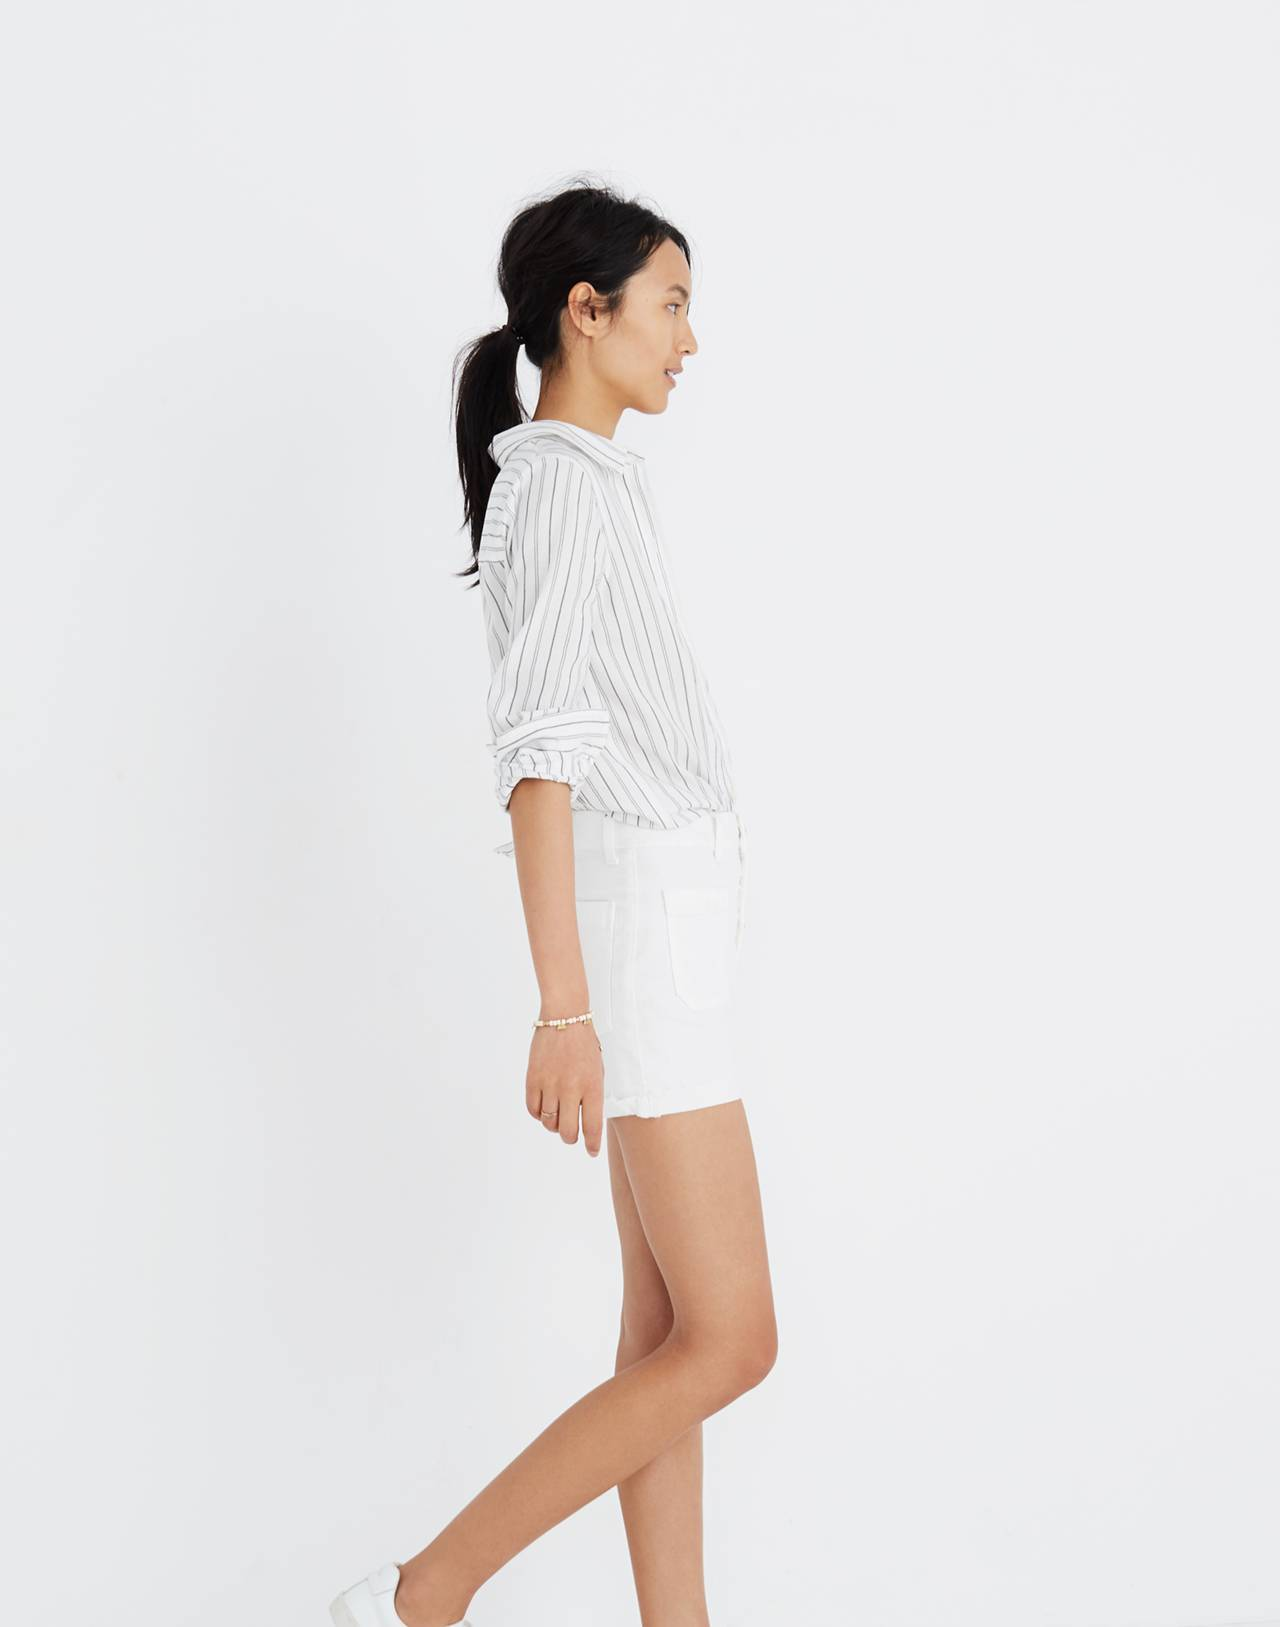 High-Rise Denim Boyshorts in Tile White: Button-Through Edition in tile white image 2